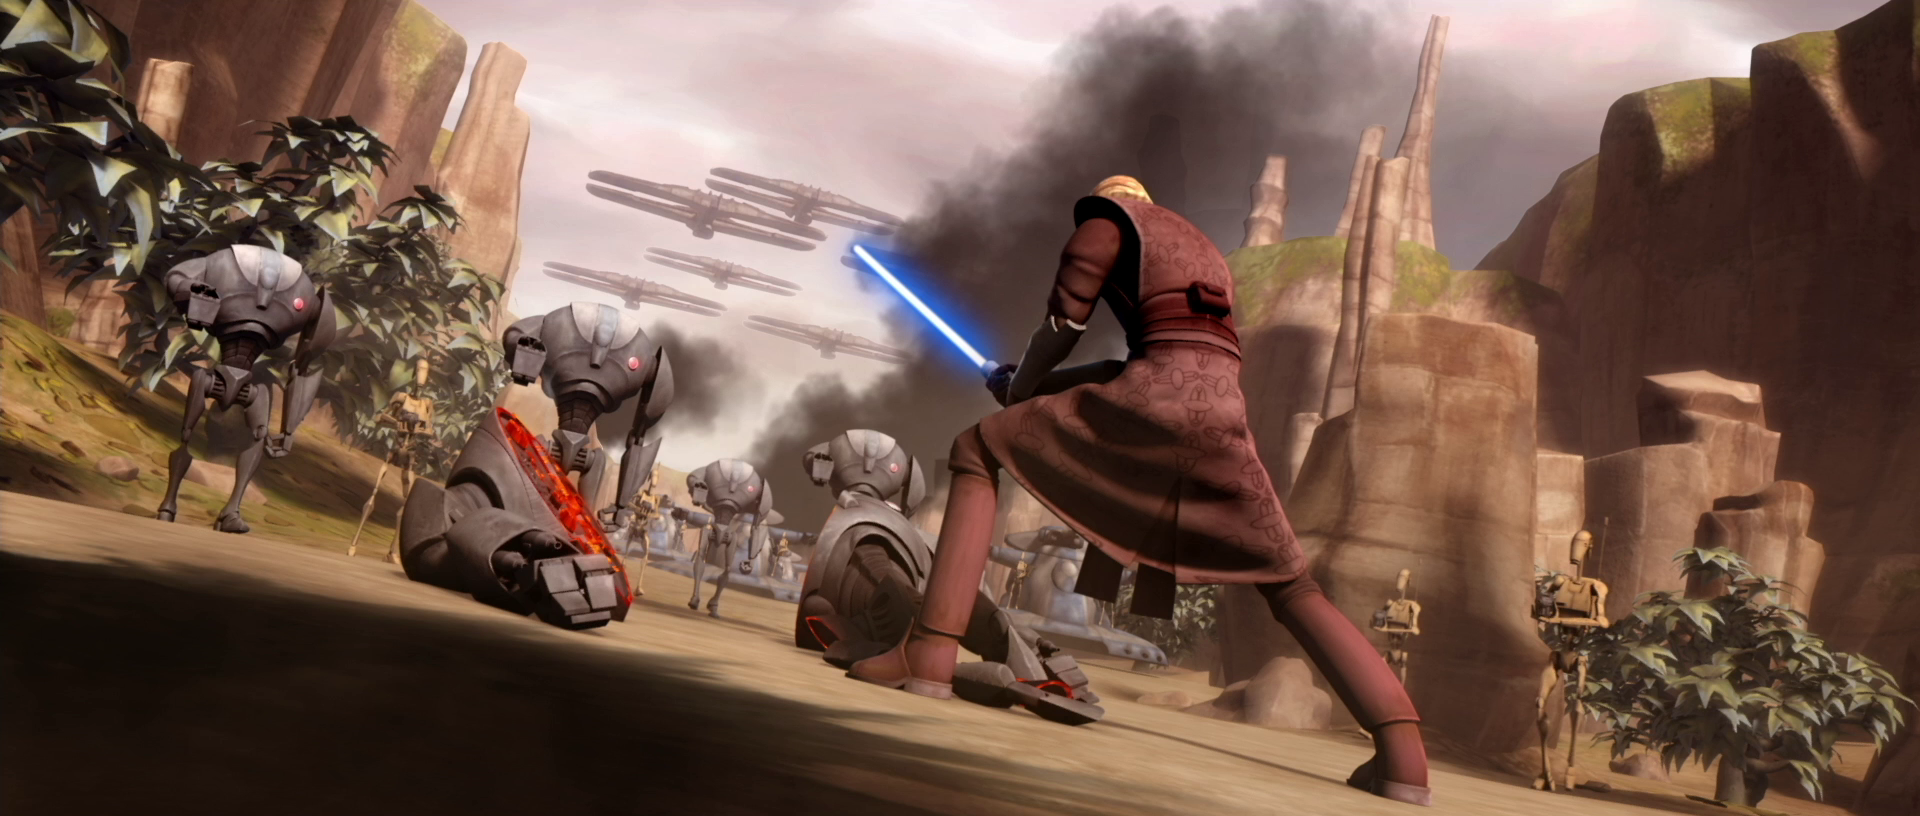 Day 6 of hoping someone would notice the droid army   Album on Imgur 1920x816